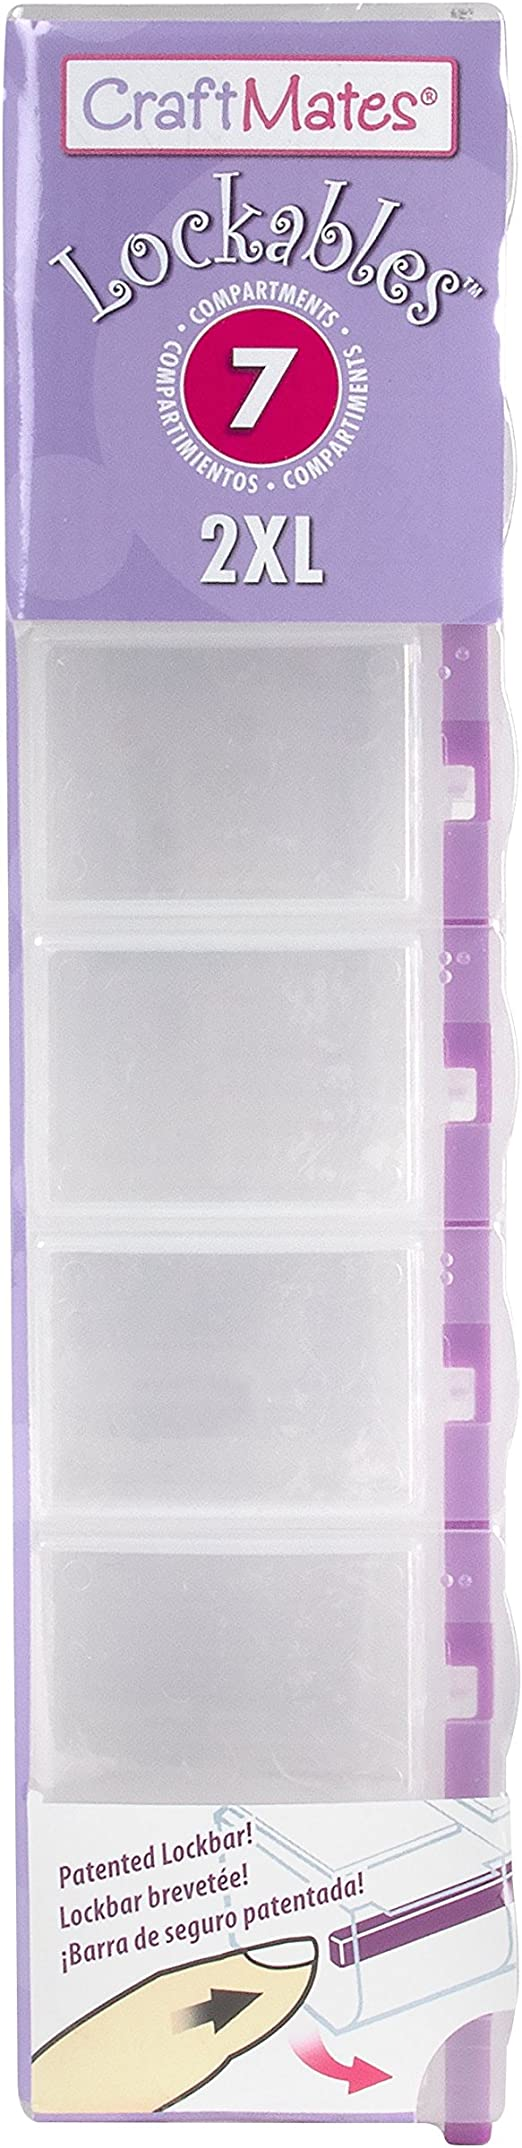 Clear Lids 7 Locking Compartments Buttons CRAFT MATES Bead Organizer and Plastic Storage Containers for Crafts 2XL Pins and More